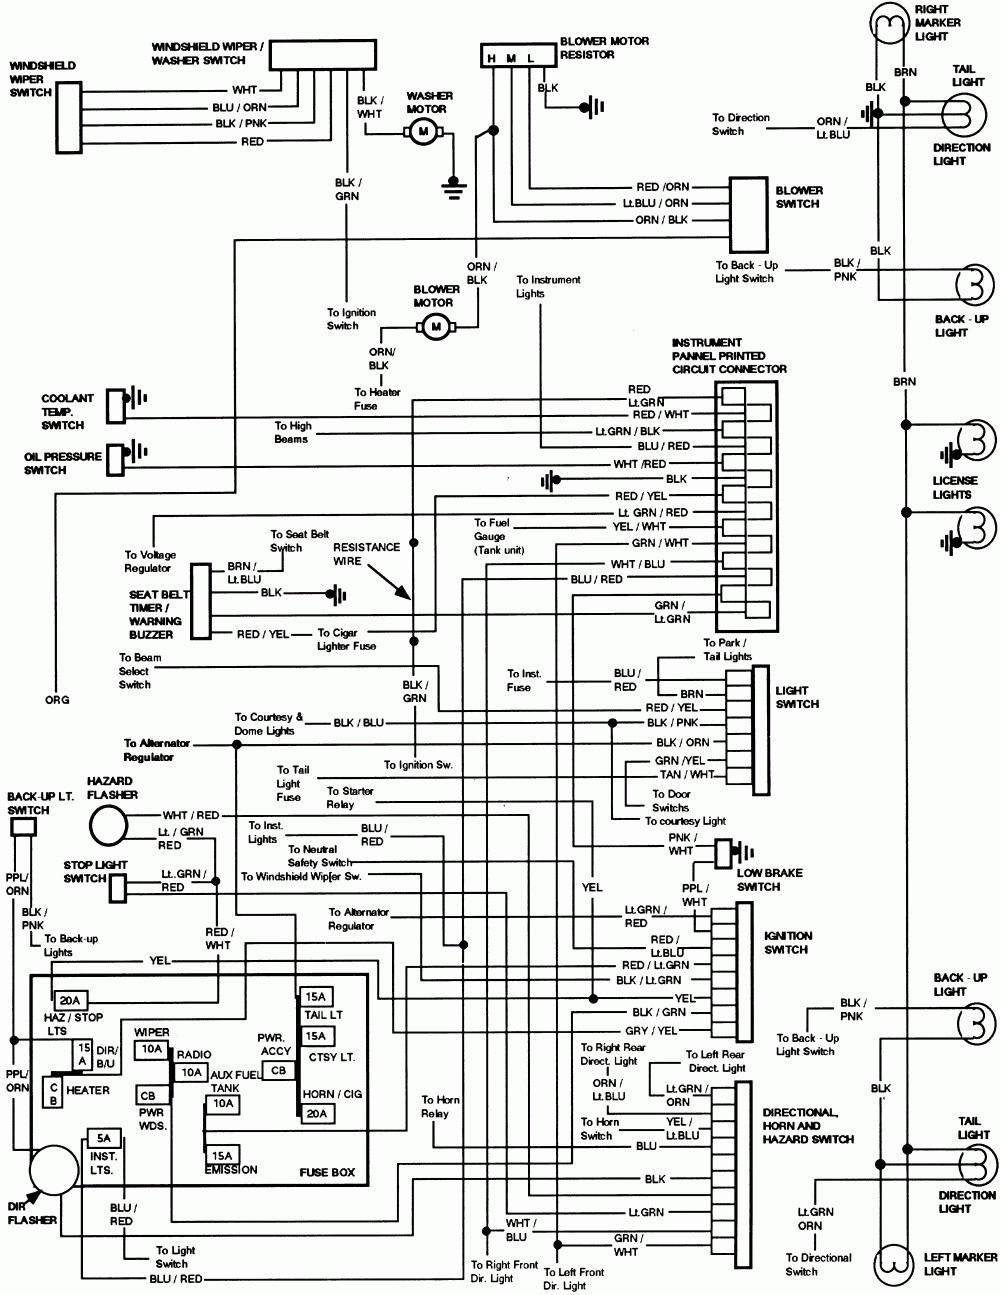 hight resolution of 1976 ford solenoid wiring diagram data diagram schematic ford bronco starter solenoid wiring